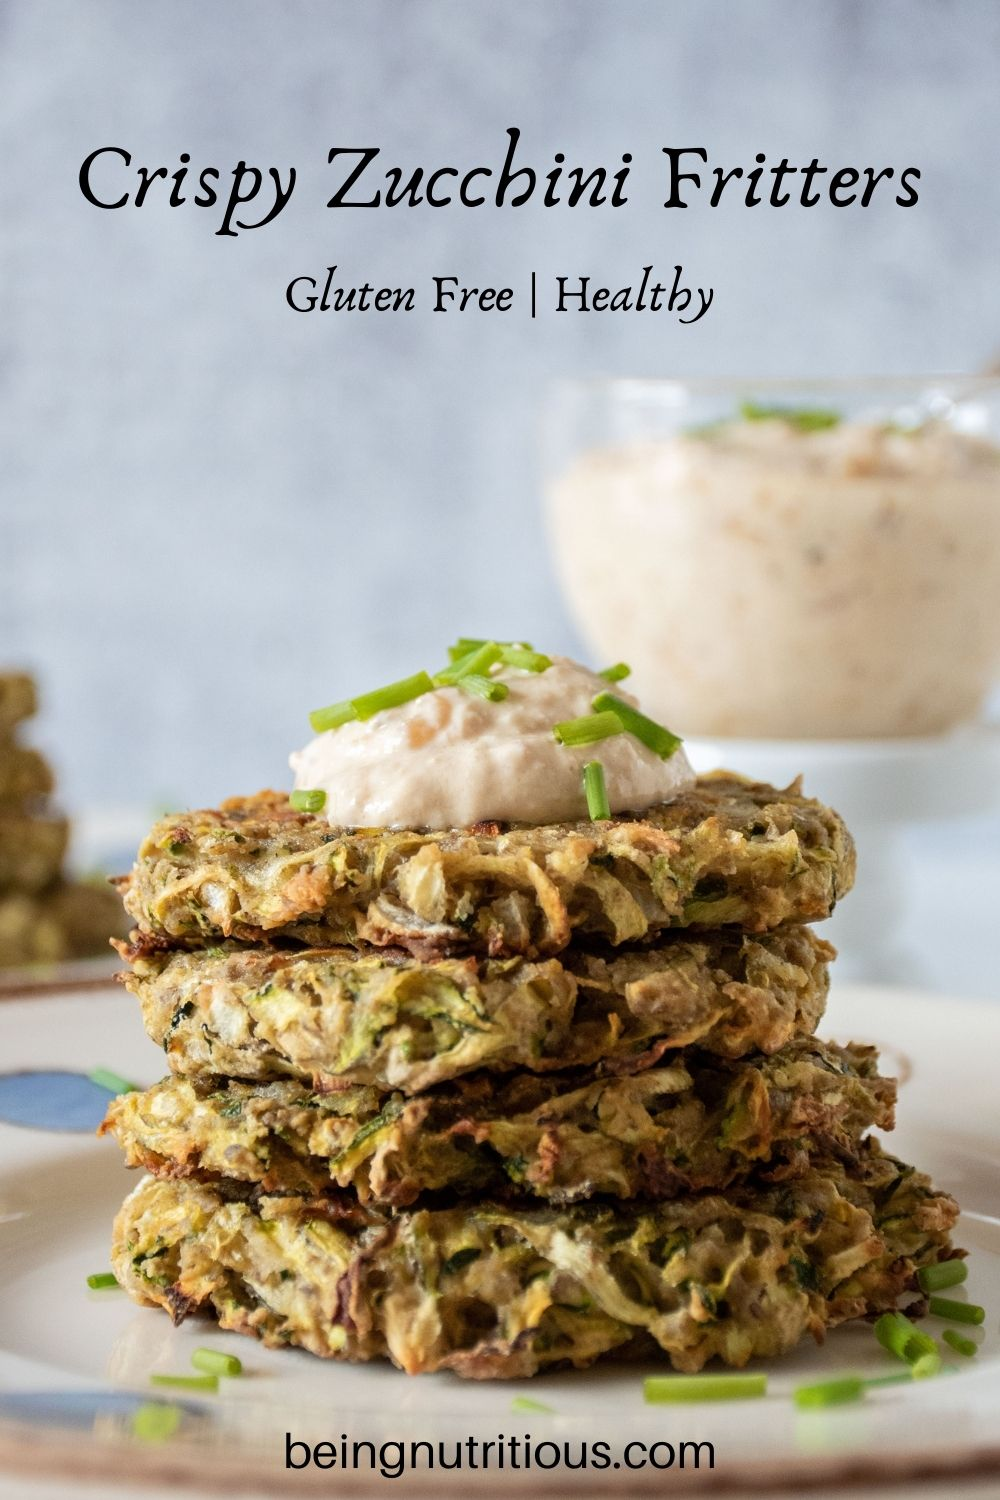 Stack of 4 zucchini fritters with a dollop of dip on top, garnished with chopped chives. Text overlay: Crispy Zucchini Fritters; gluten free, healthy.